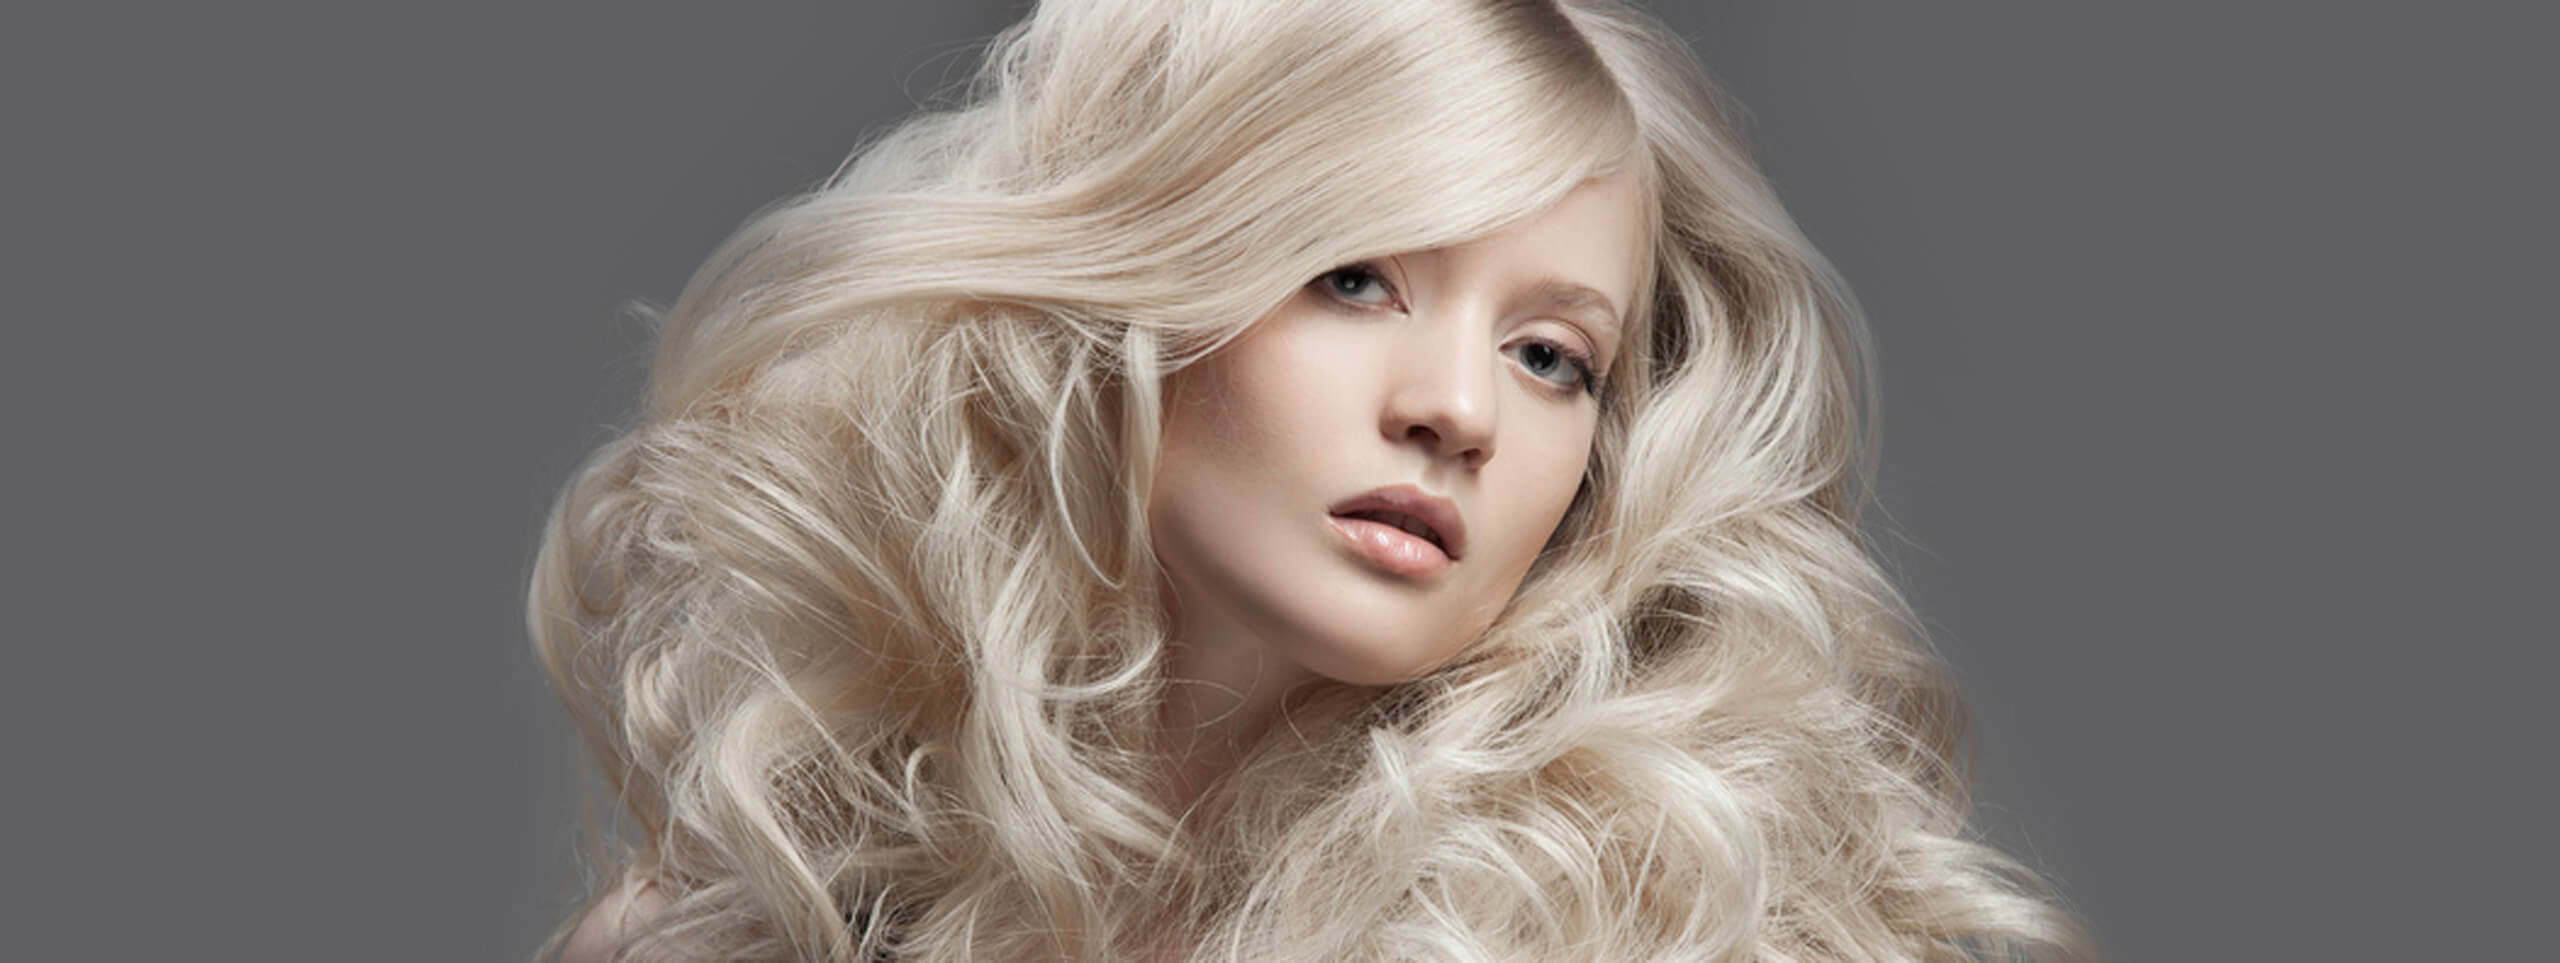 Model with blonde curly hairstyle